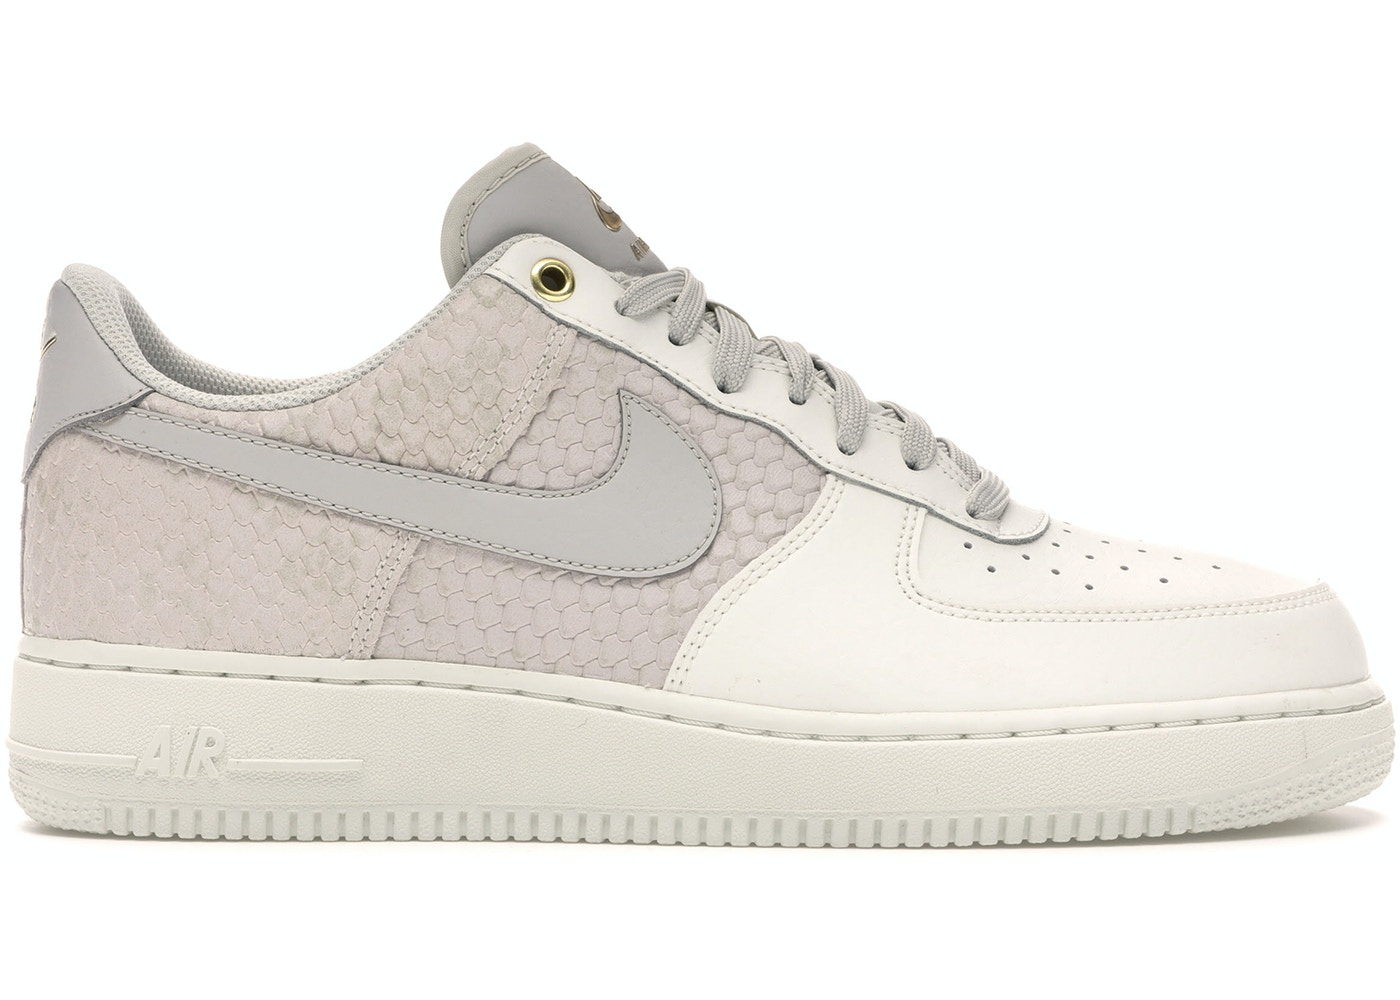 newest 898f7 2b38e Sell. or Ask. Size 8. View All Bids. Air Force 1 Low Sail Light Bone Metallic  Gold